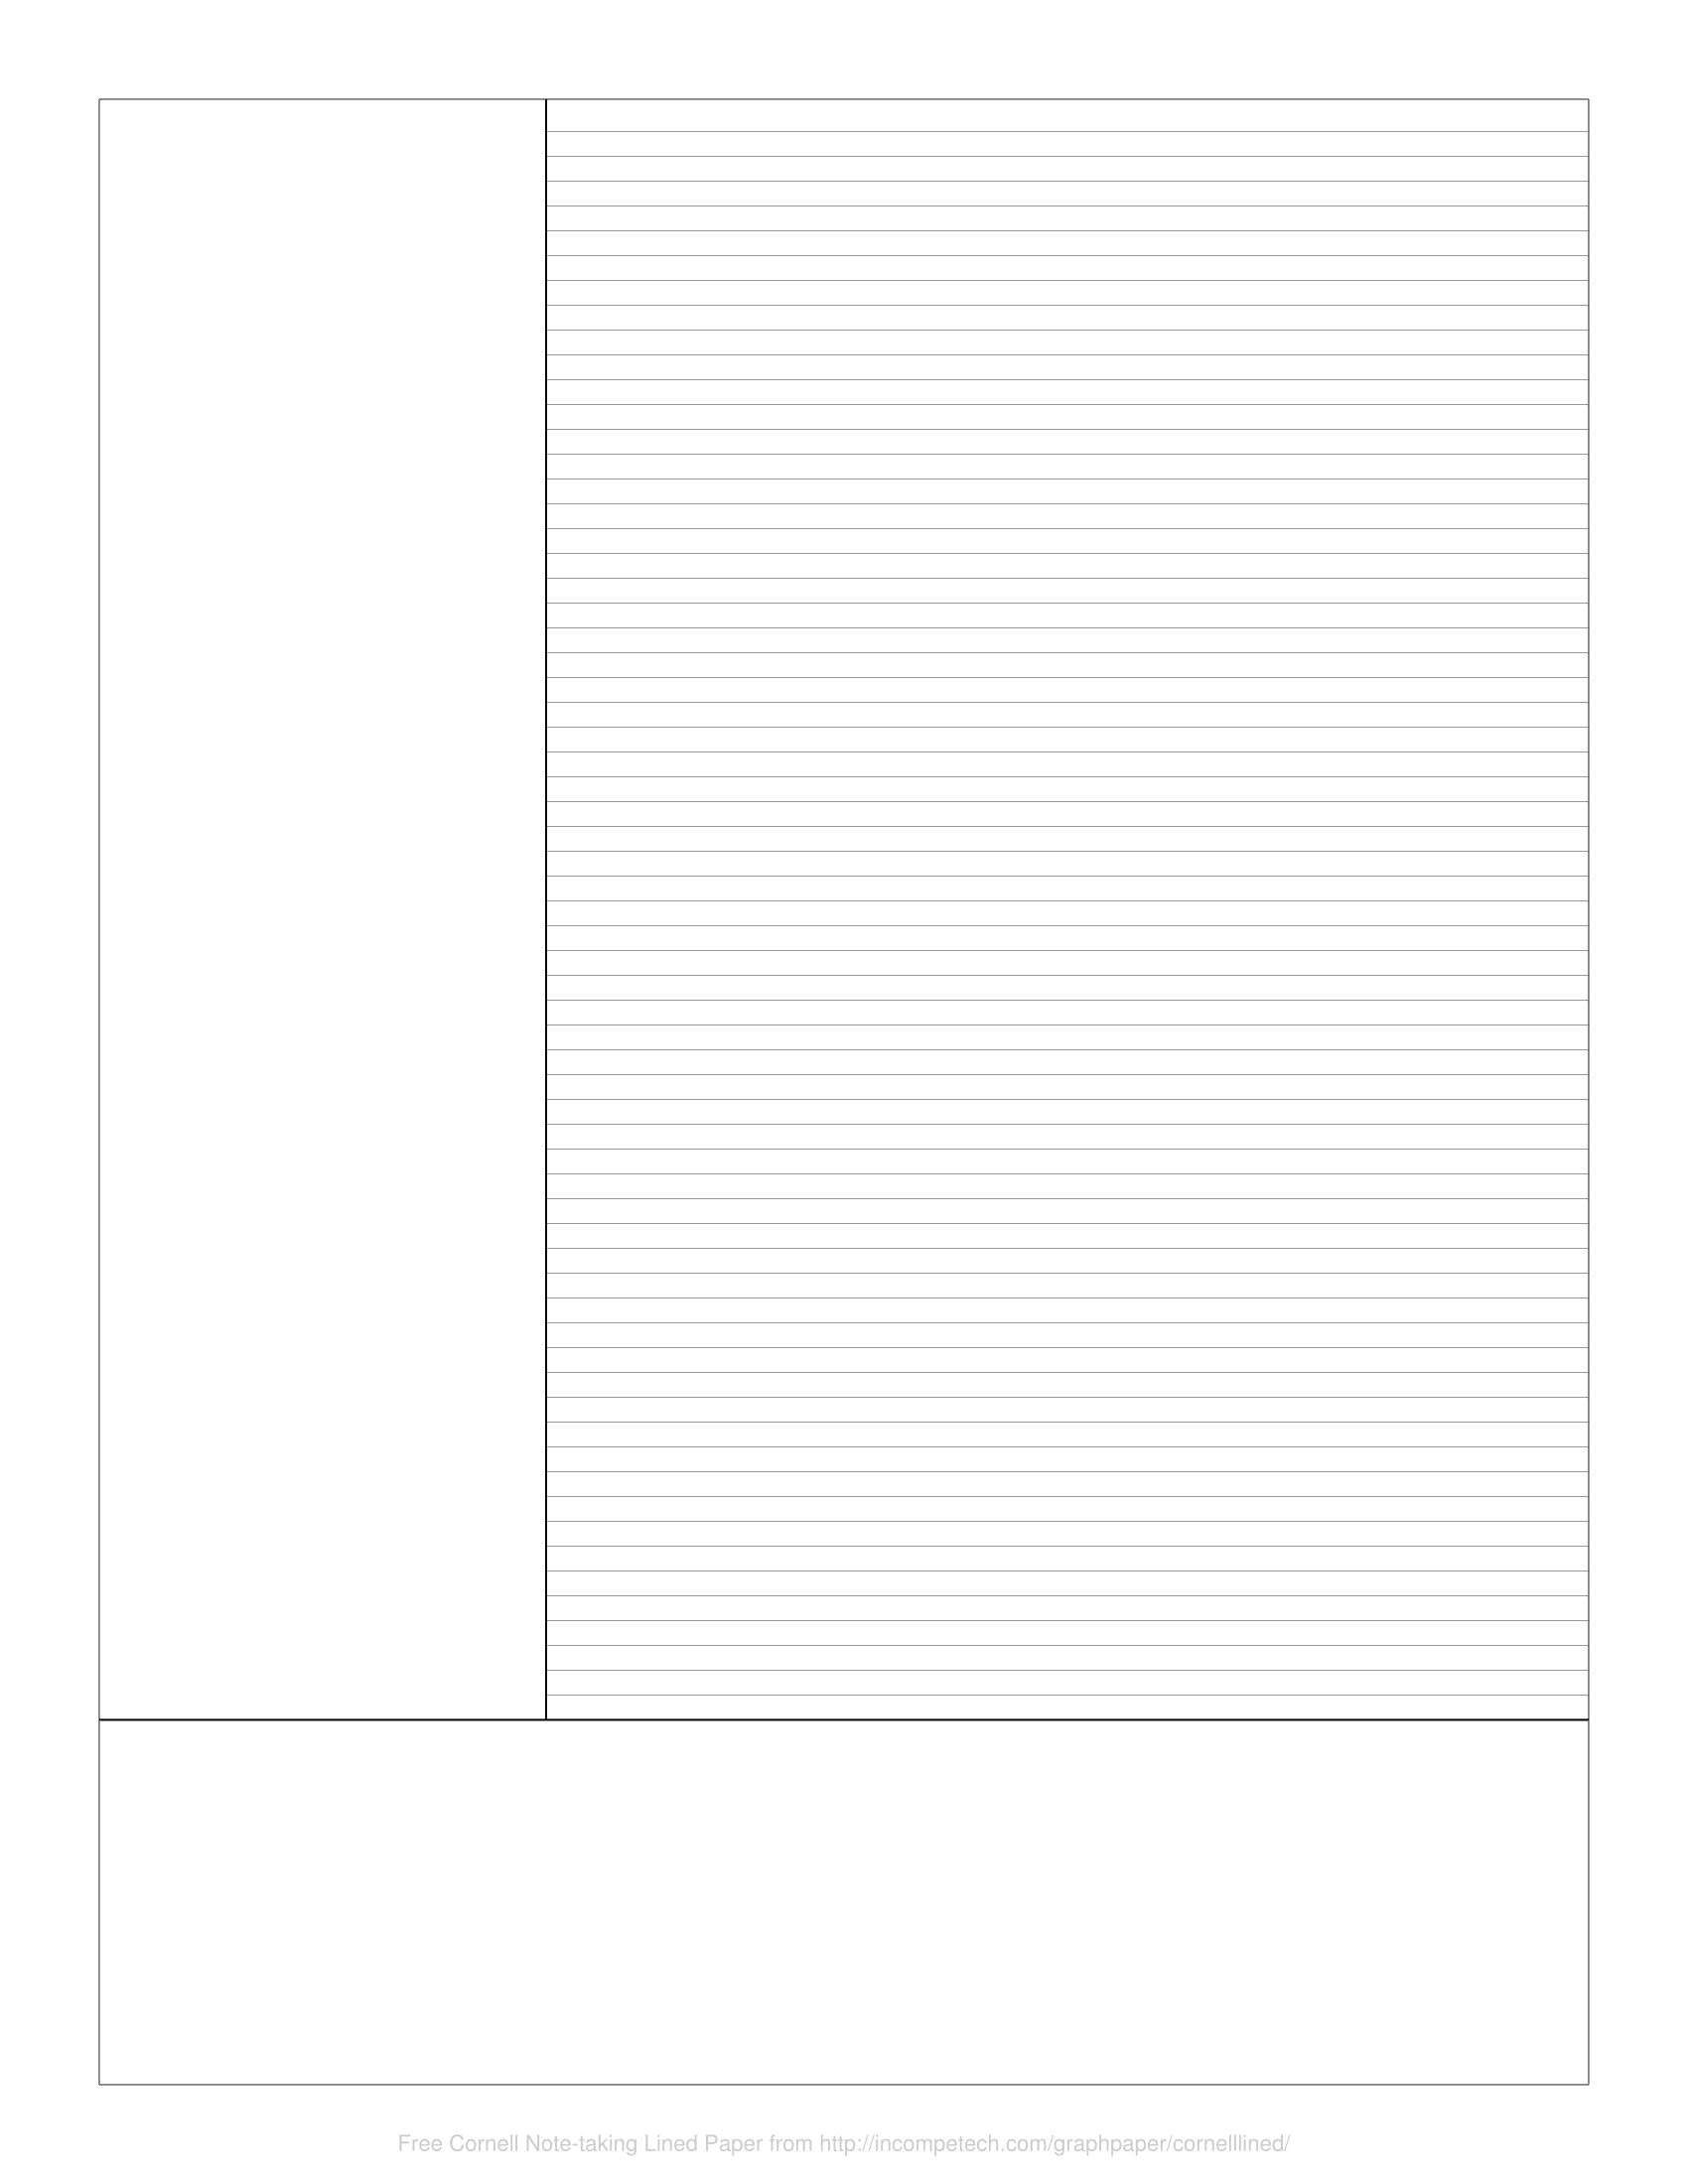 Free Online Graph Paper / Cornell Note-taking Lined